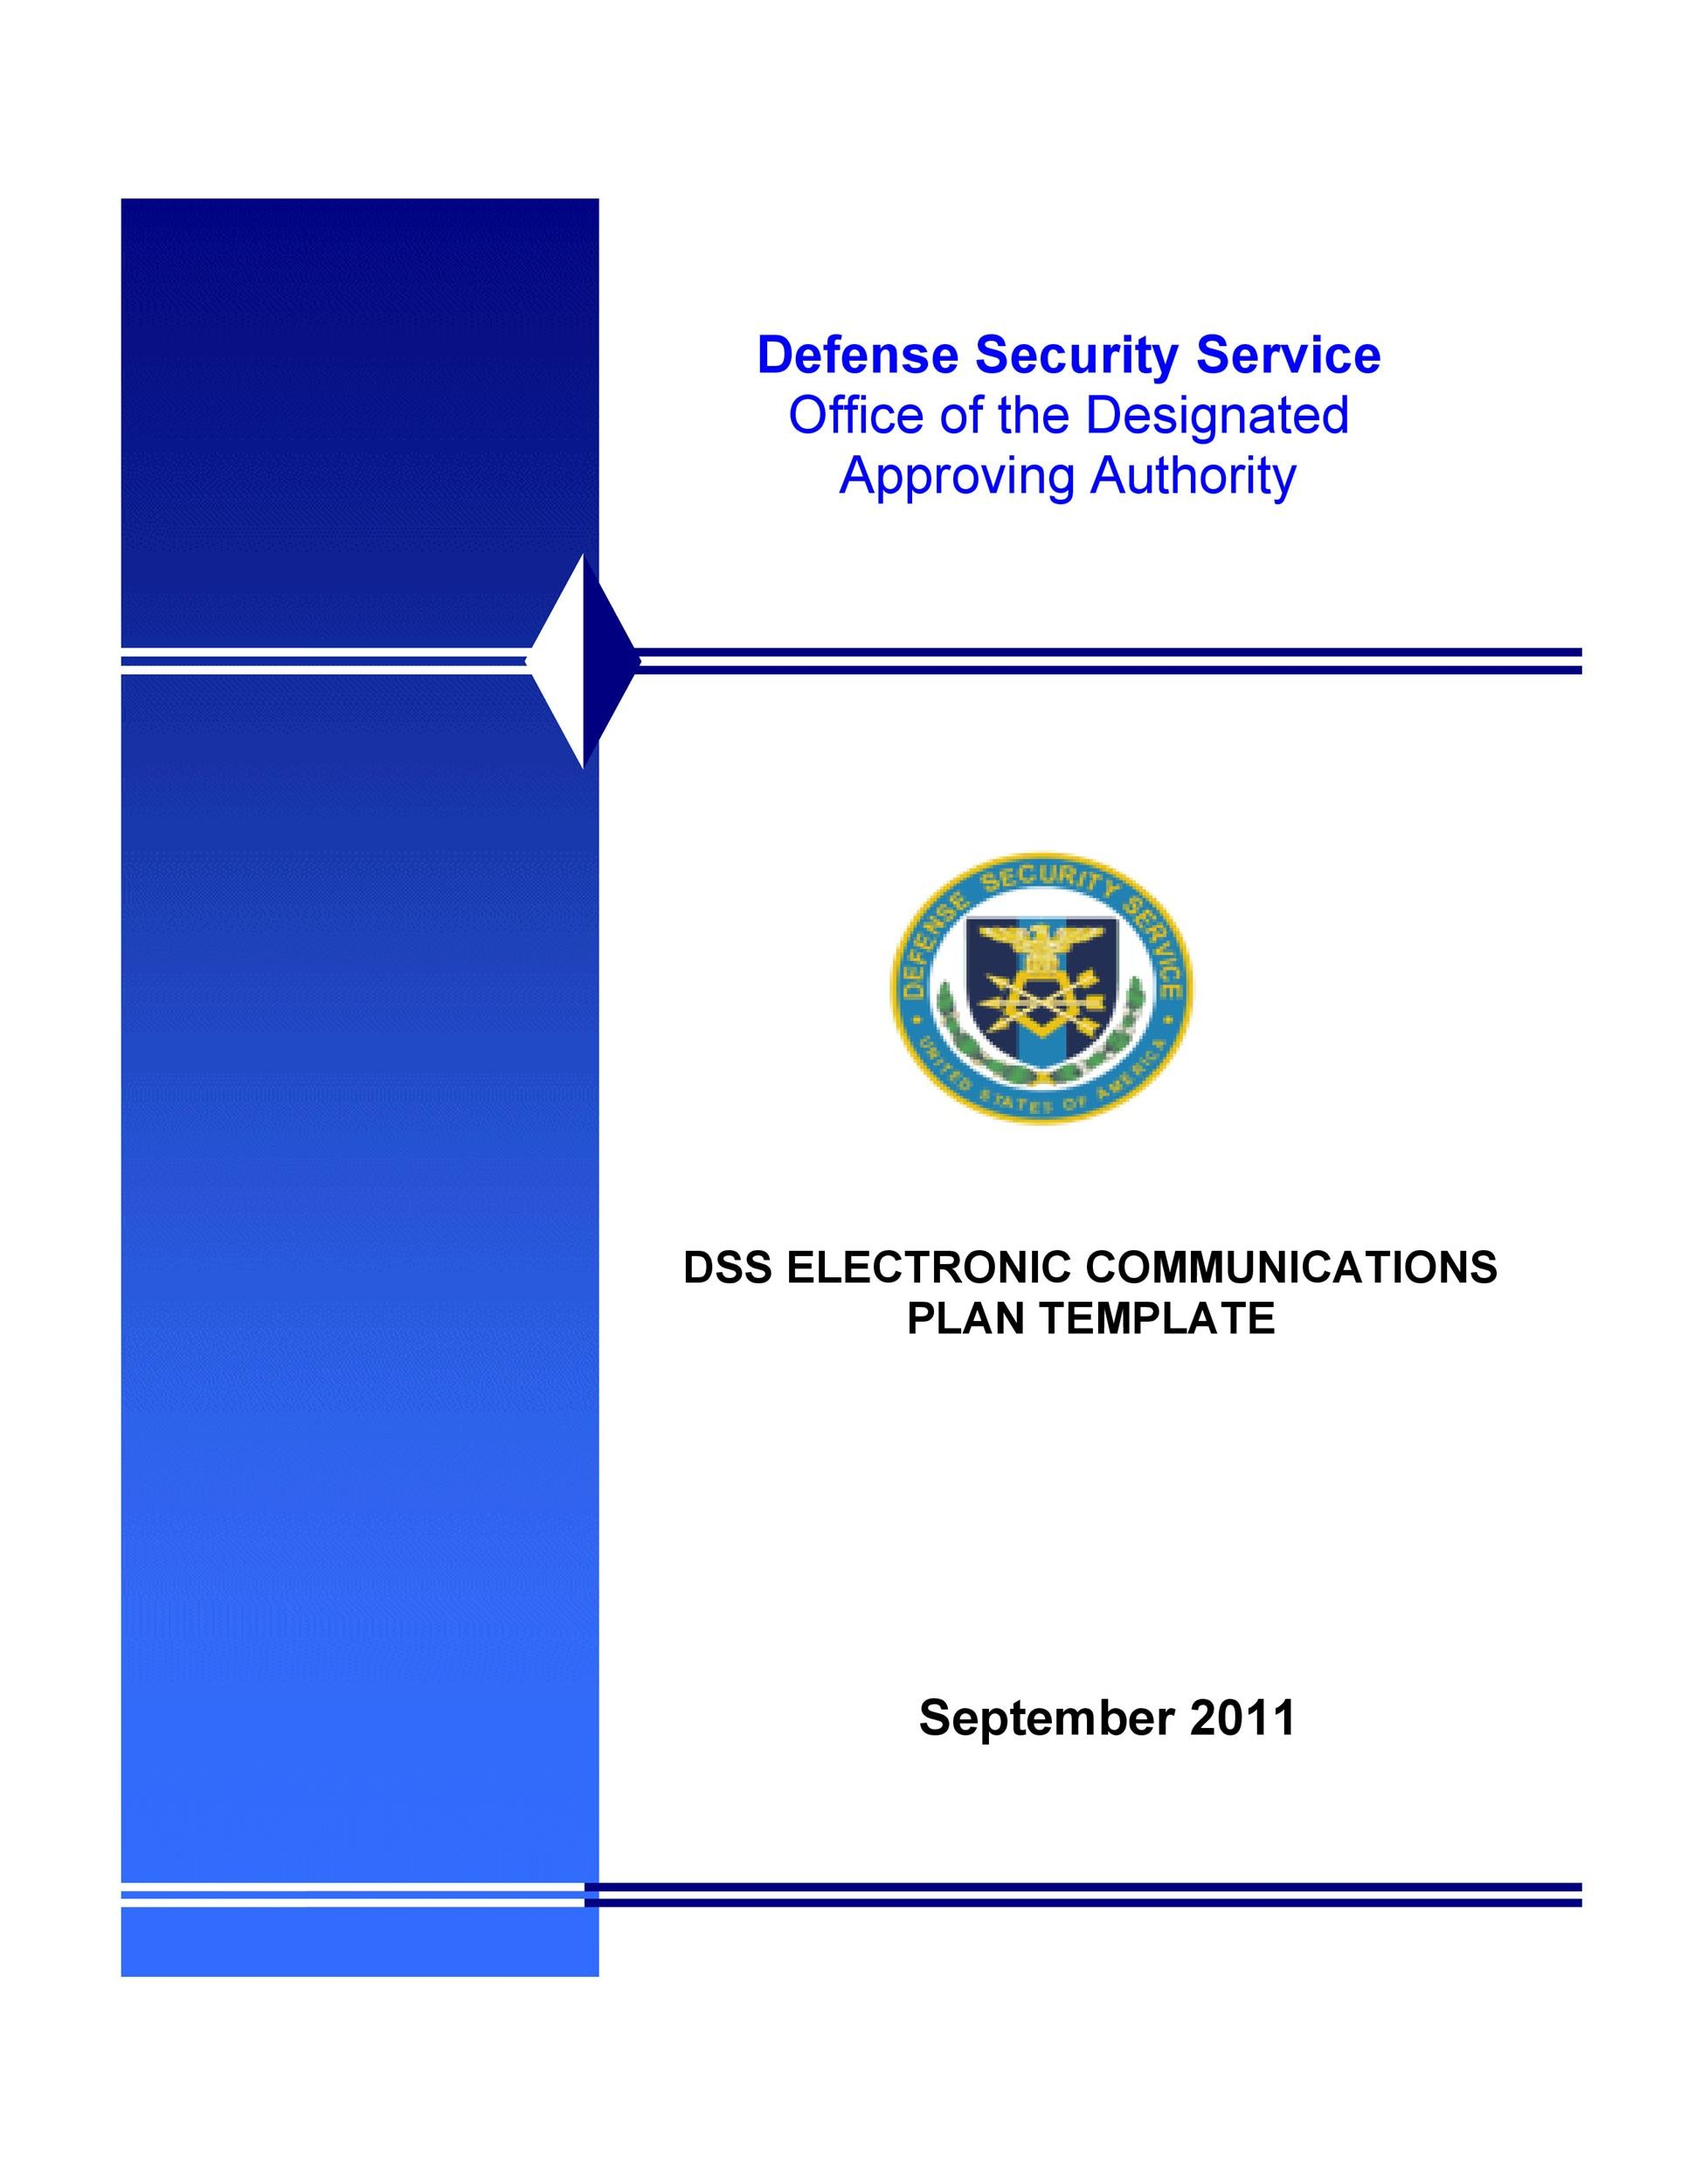 42 Information Security Policy Templates Cyber Security ᐅ